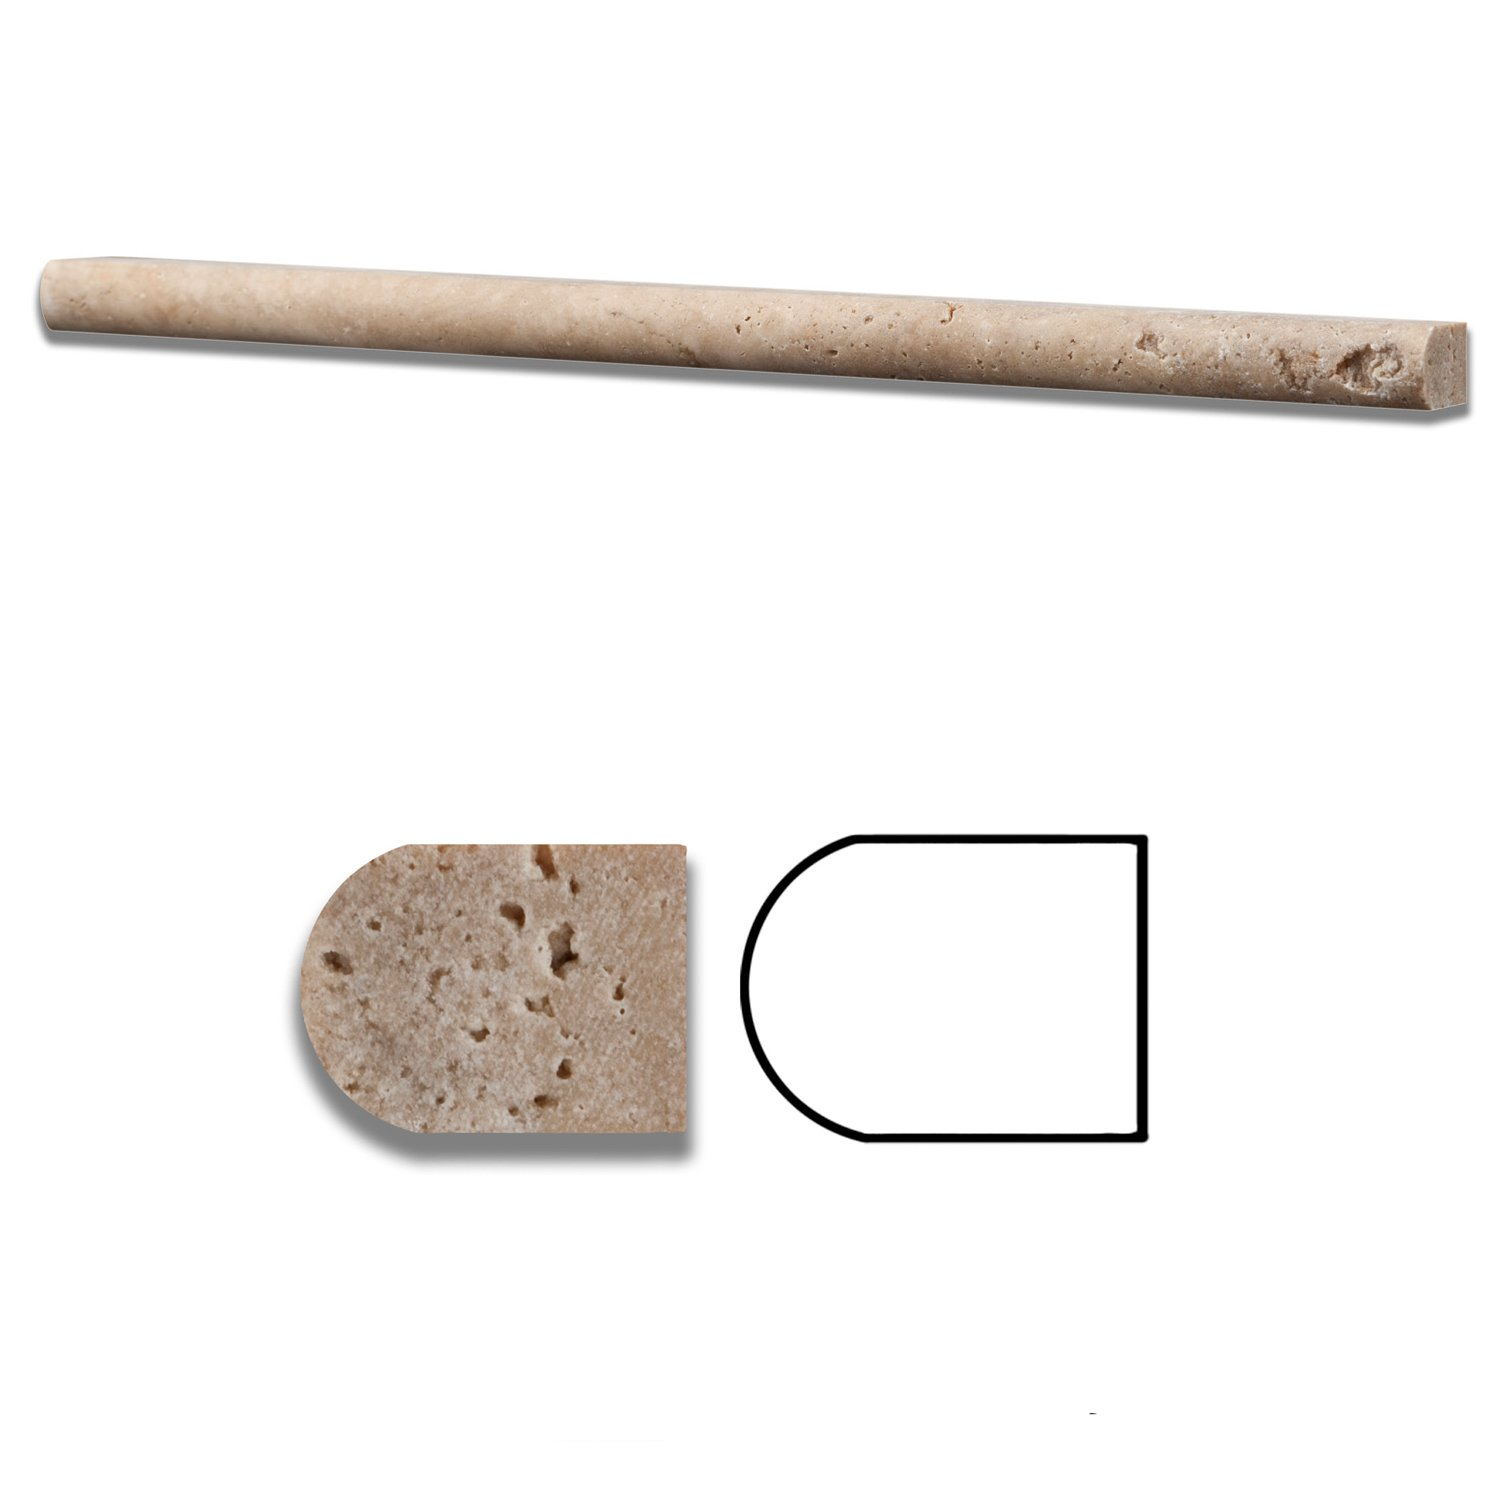 Travertine Chair Rail 2 X 12 Part - 43: Walnut Travertine Honed 1/2 X 12 Pencil Liner Trim Molding - Standard  Quality - BOX Of 15 PCS - Wood Moldings And Trims - Amazon.com